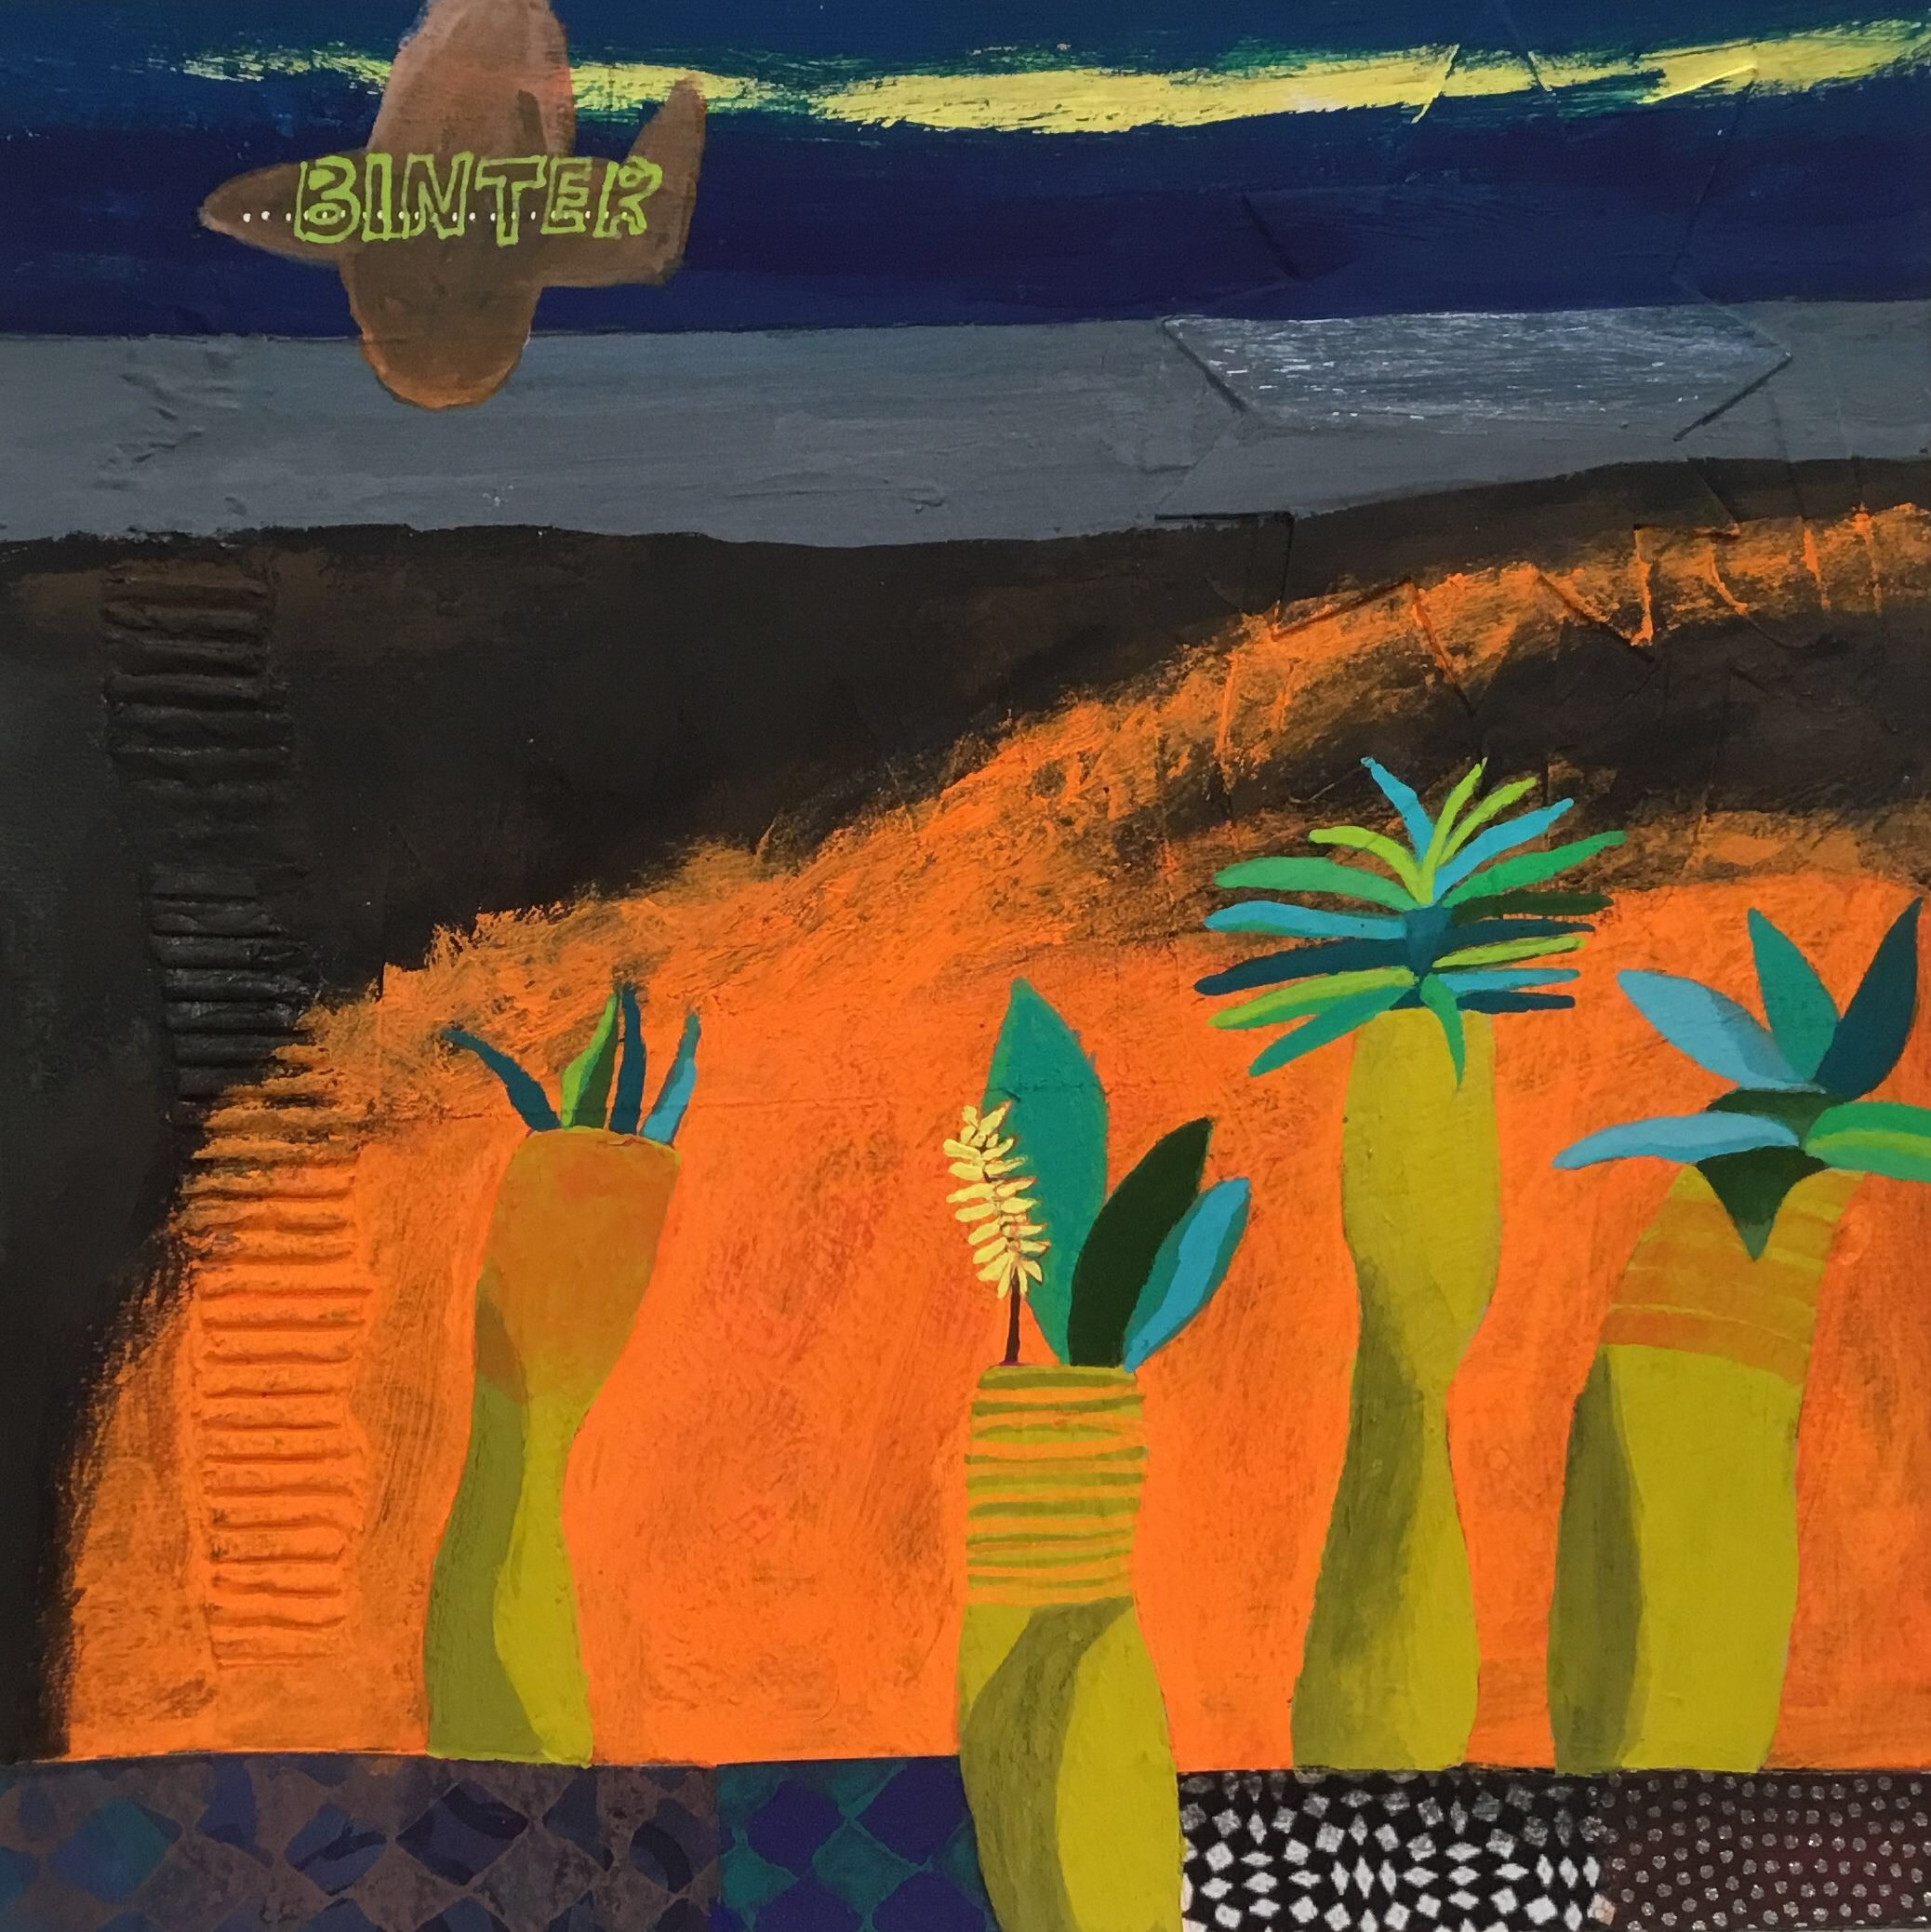 """<span class=""""link fancybox-details-link""""><a href=""""/artists/146-gertie-young/works/11875-gertie-young-connecting-flight-to-la-gomera/"""">View Detail Page</a></span><div class=""""artist""""><span class=""""artist""""><strong>Gertie Young</strong></span></div><div class=""""title""""><em>Connecting Flight to La Gomera</em></div><div class=""""medium"""">watercolour & gouache collage</div><div class=""""dimensions"""">Frame: 31 x 31 cm<br /> Artwork: 20 x 20 cm</div><div class=""""price"""">£320.00</div>"""